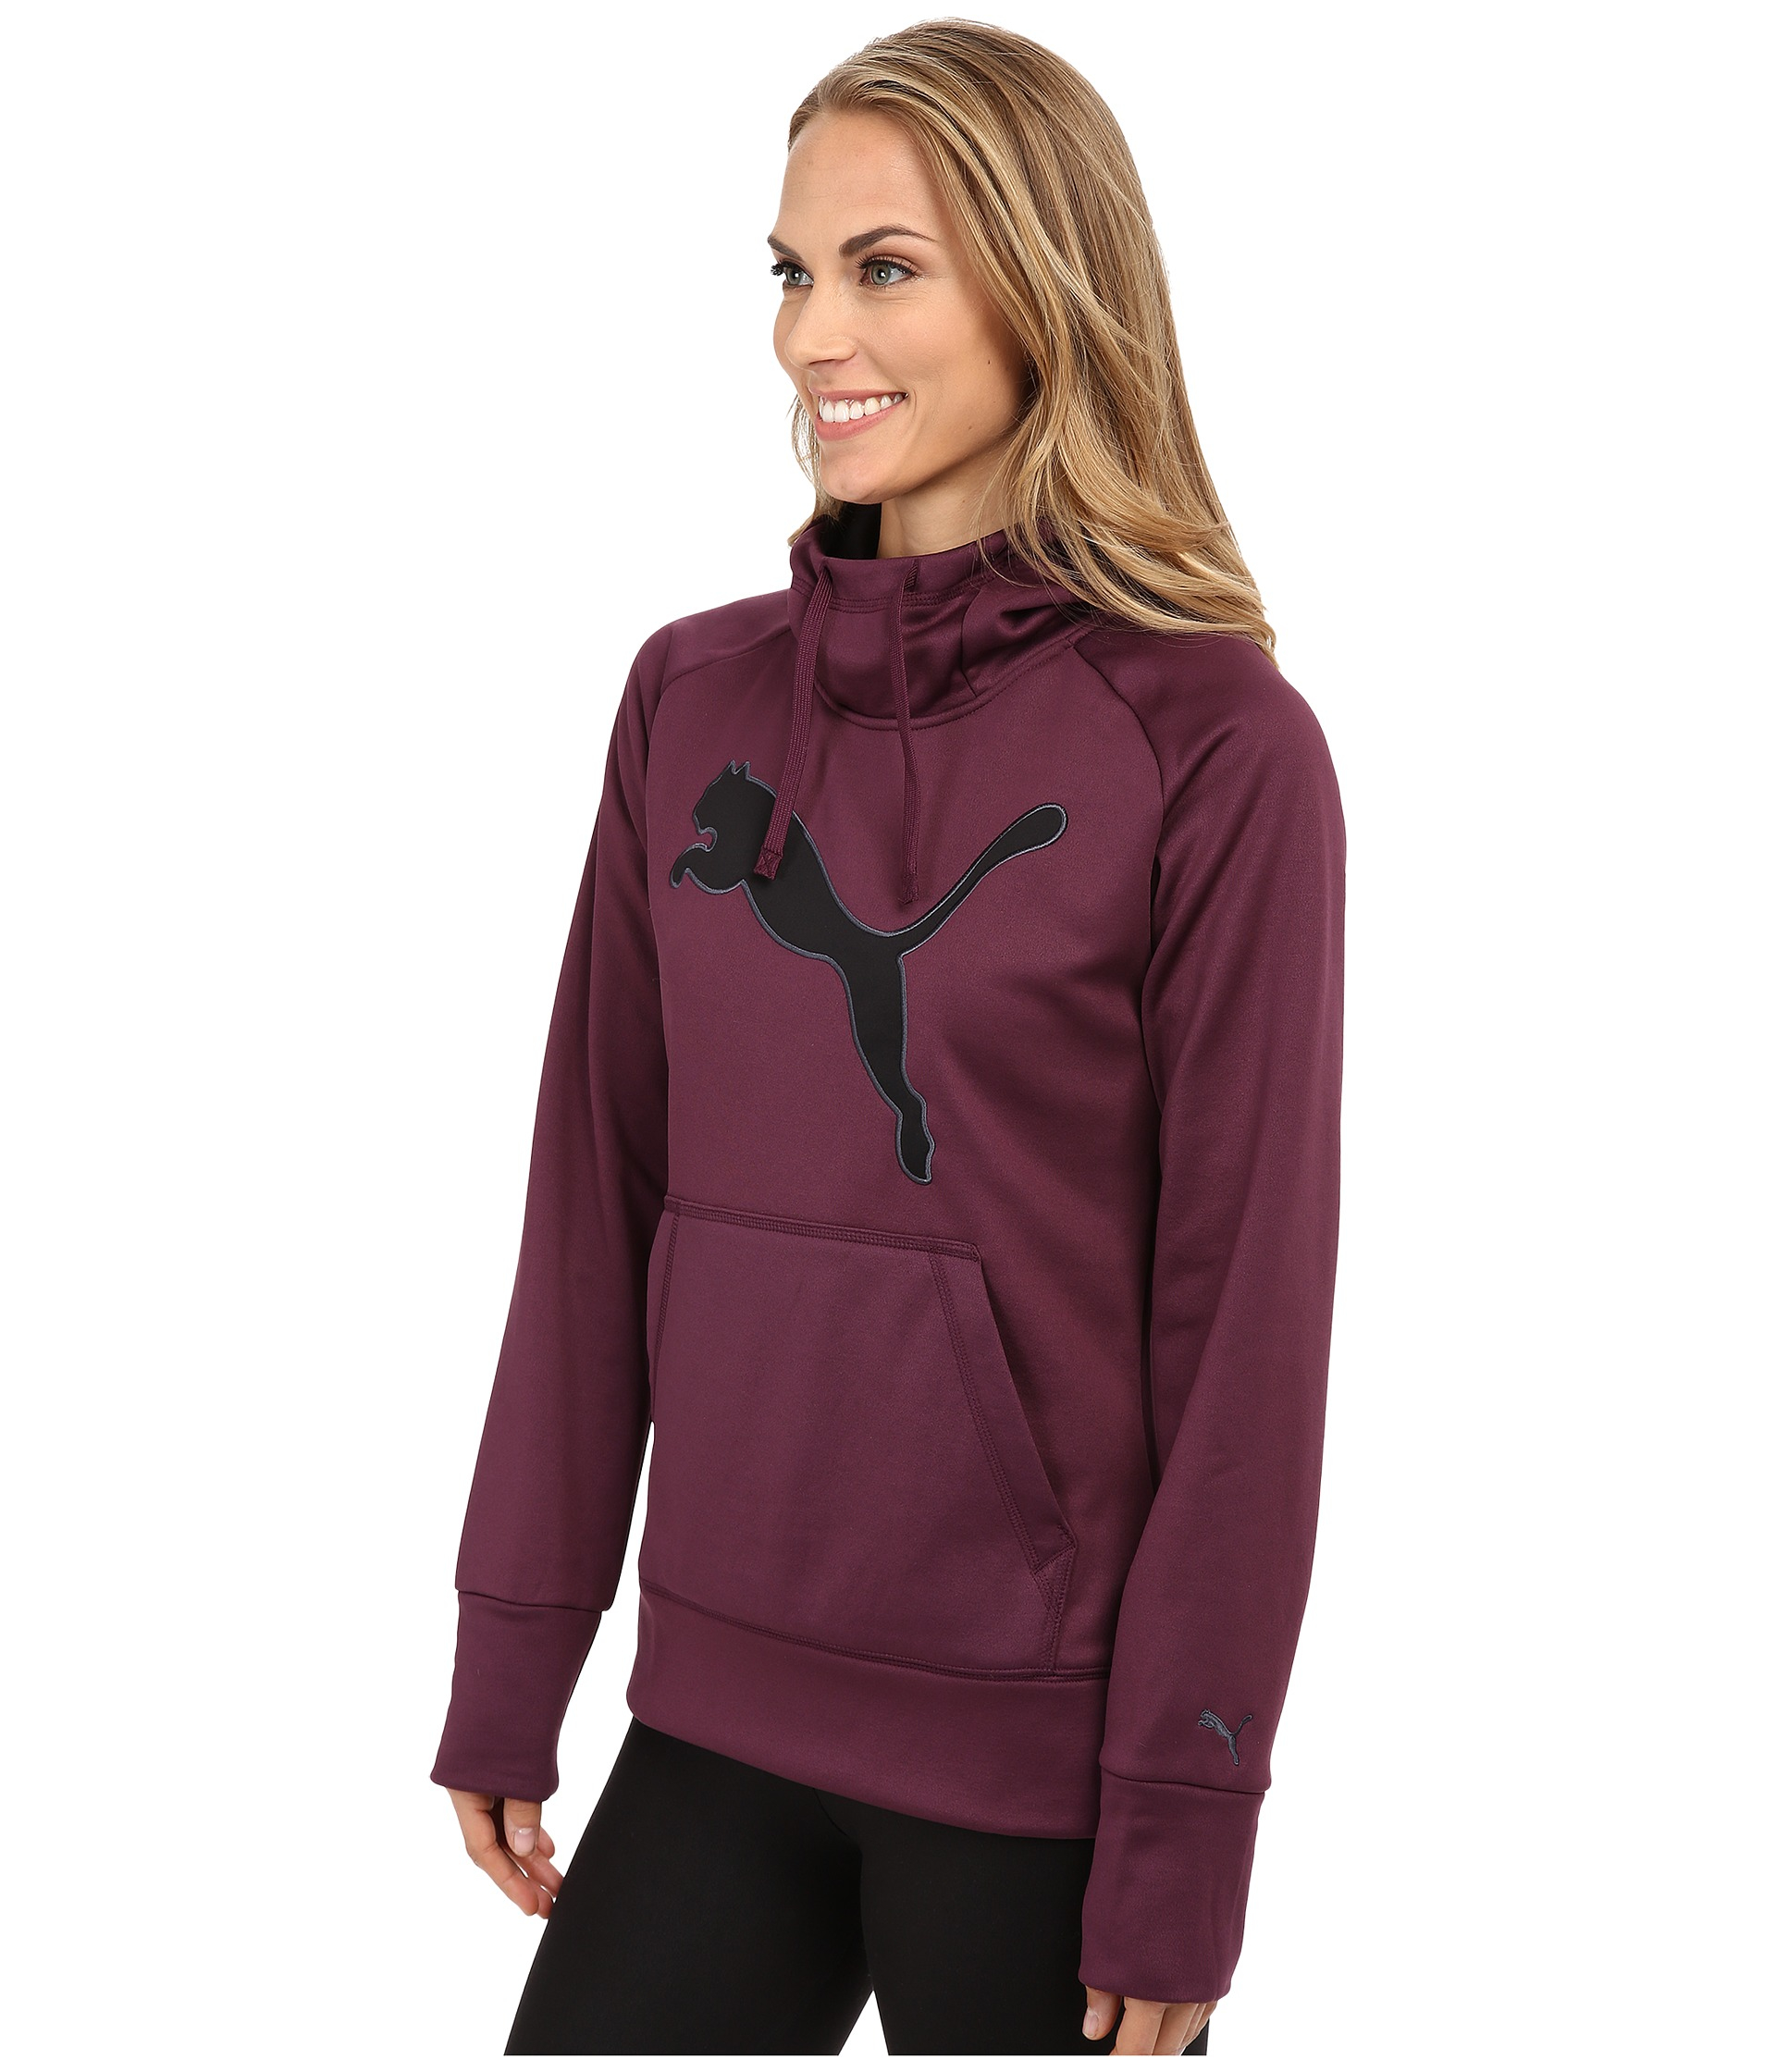 puma purple hoodies